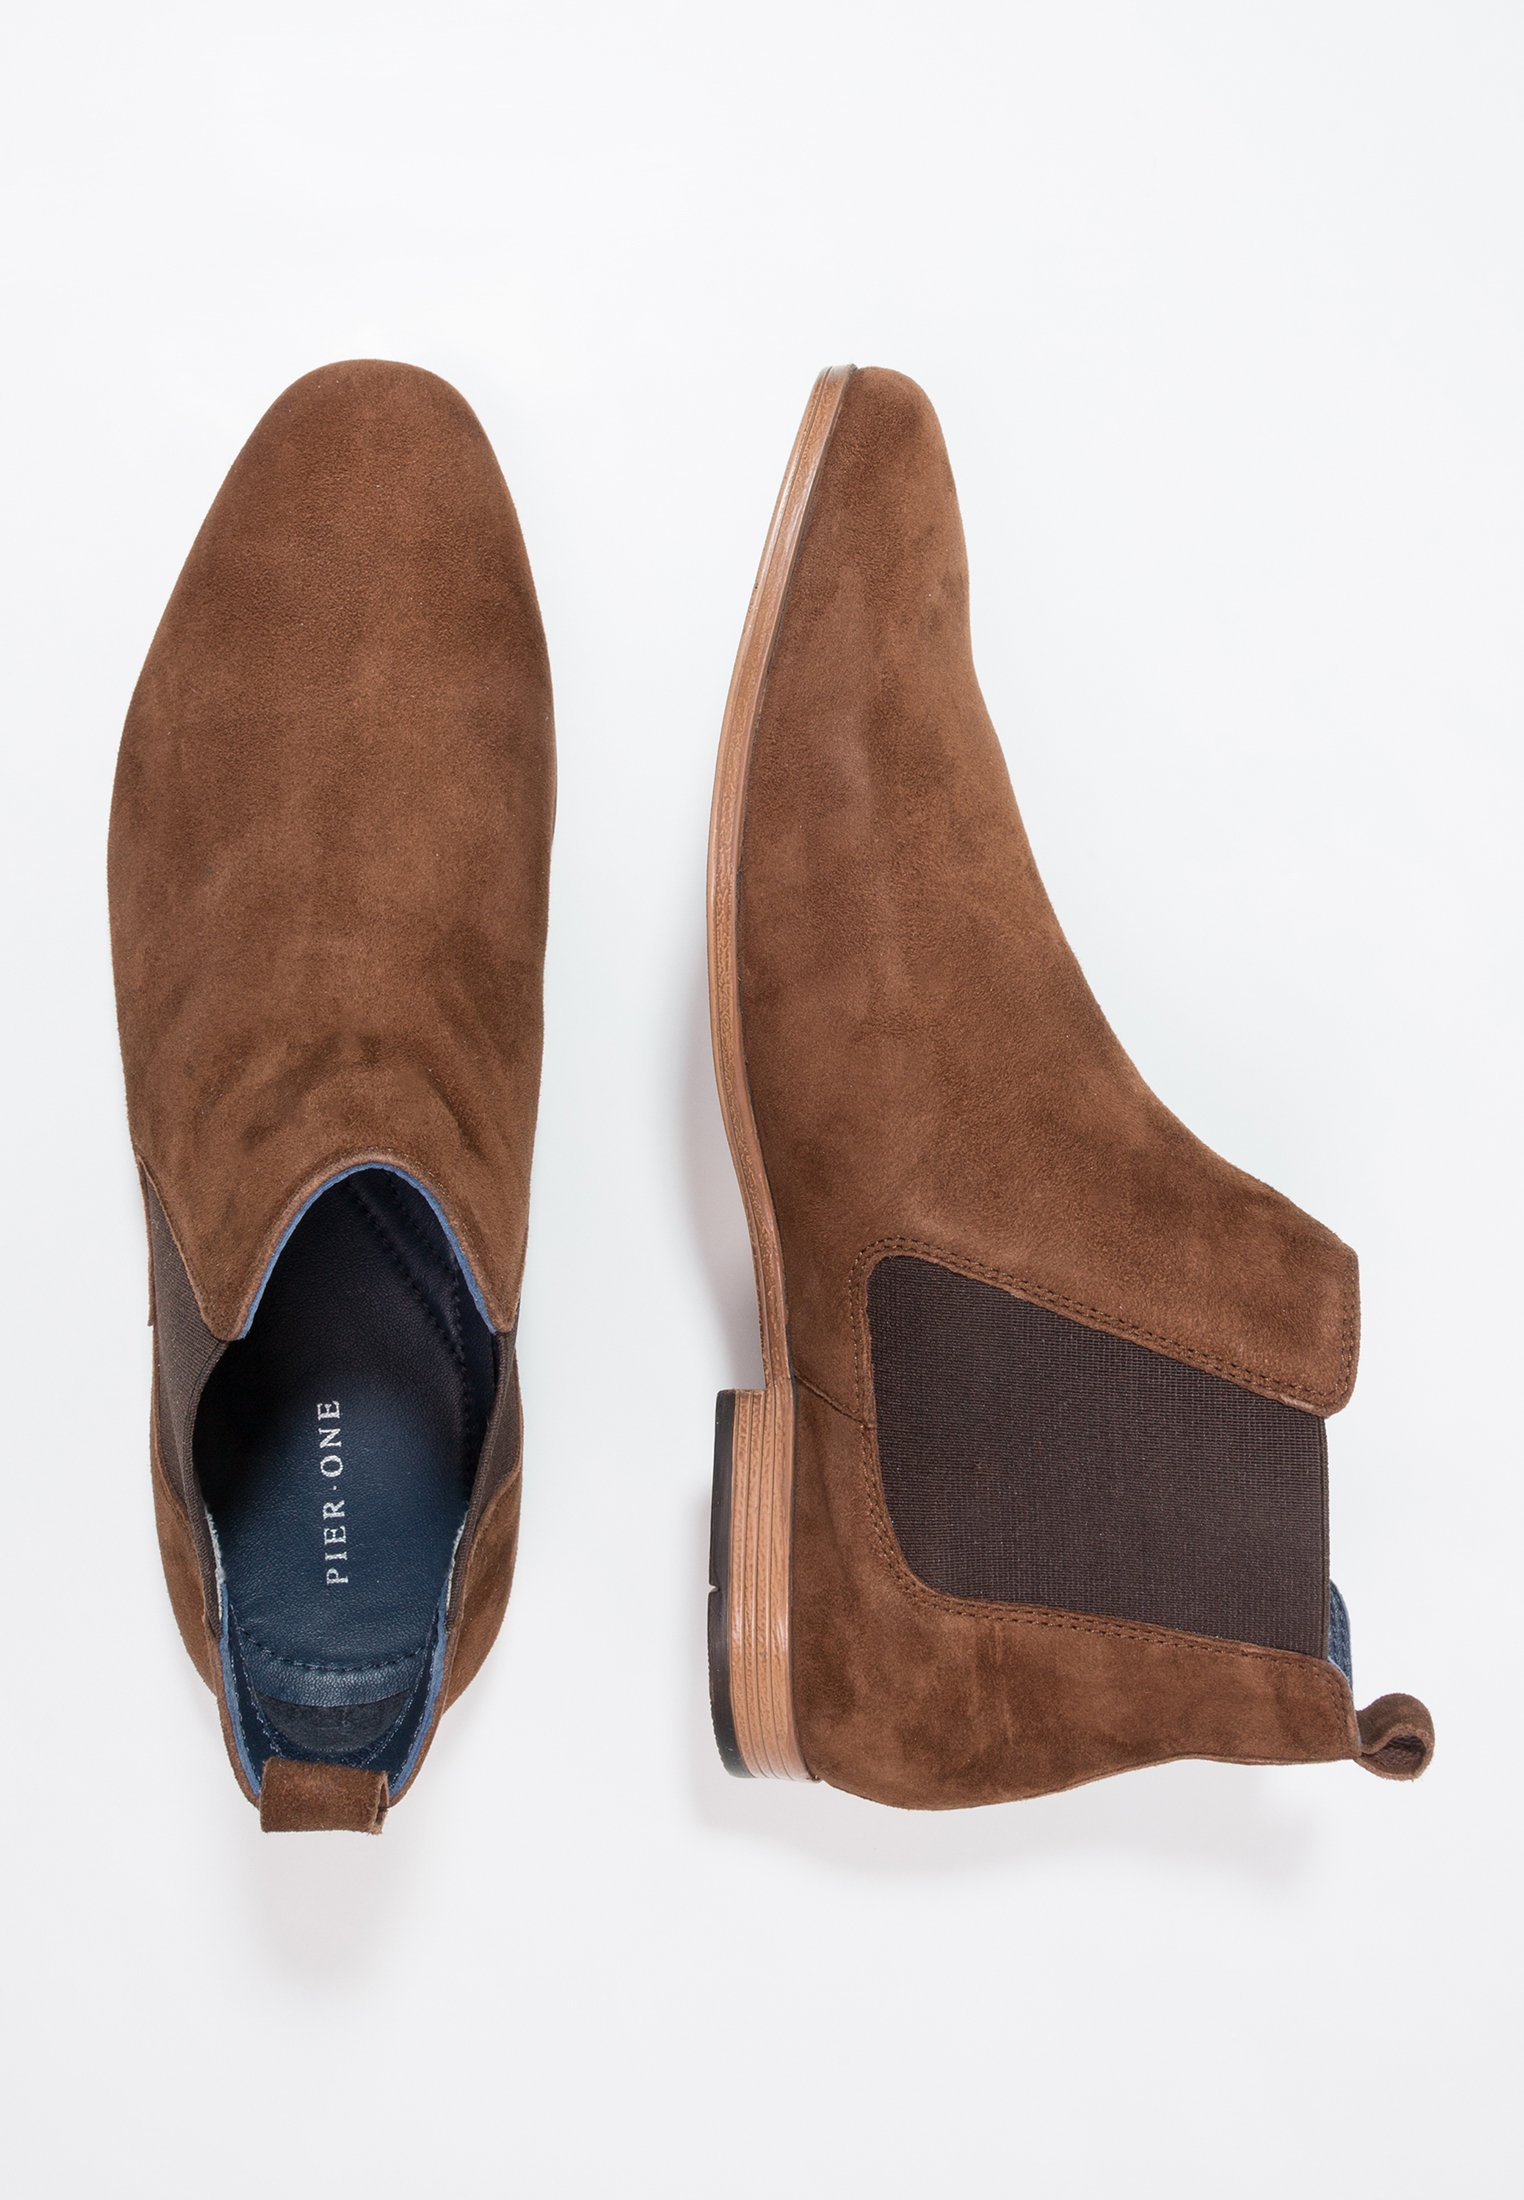 Pier One brown Classic ankle boots